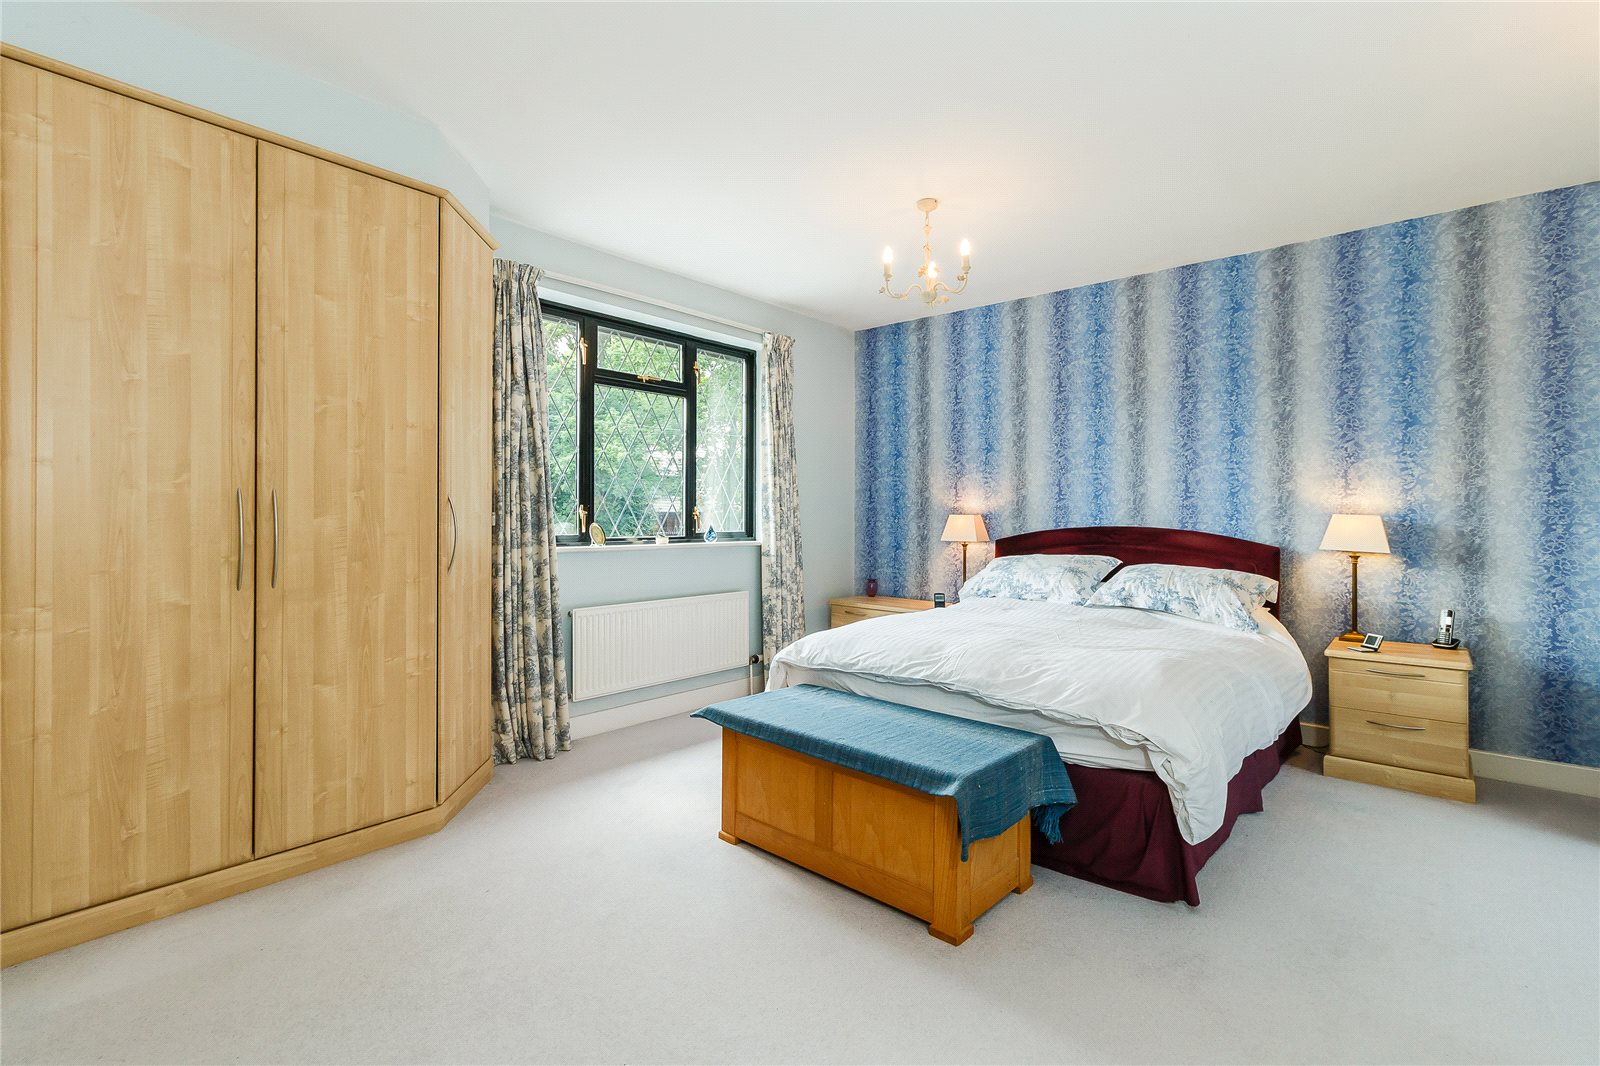 Additional photo for property listing at Daleside, Gerrards Cross, Buckinghamshire, SL9 Gerrards Cross, イギリス